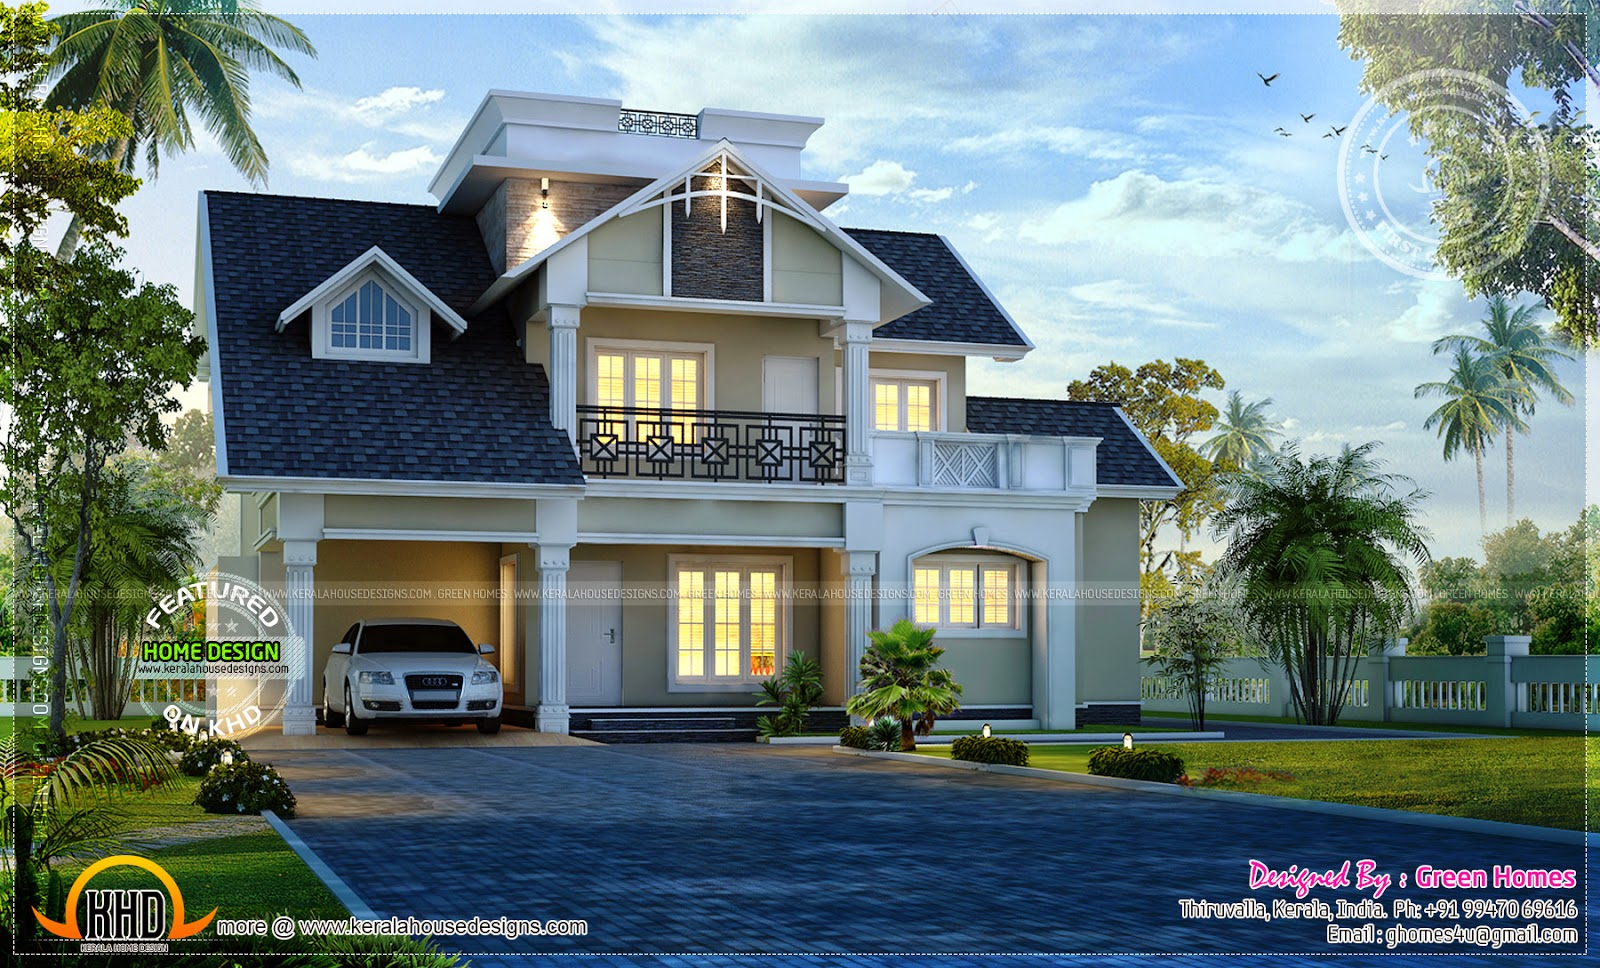 Awesome modern house exterior kerala home design and for Home plan websites